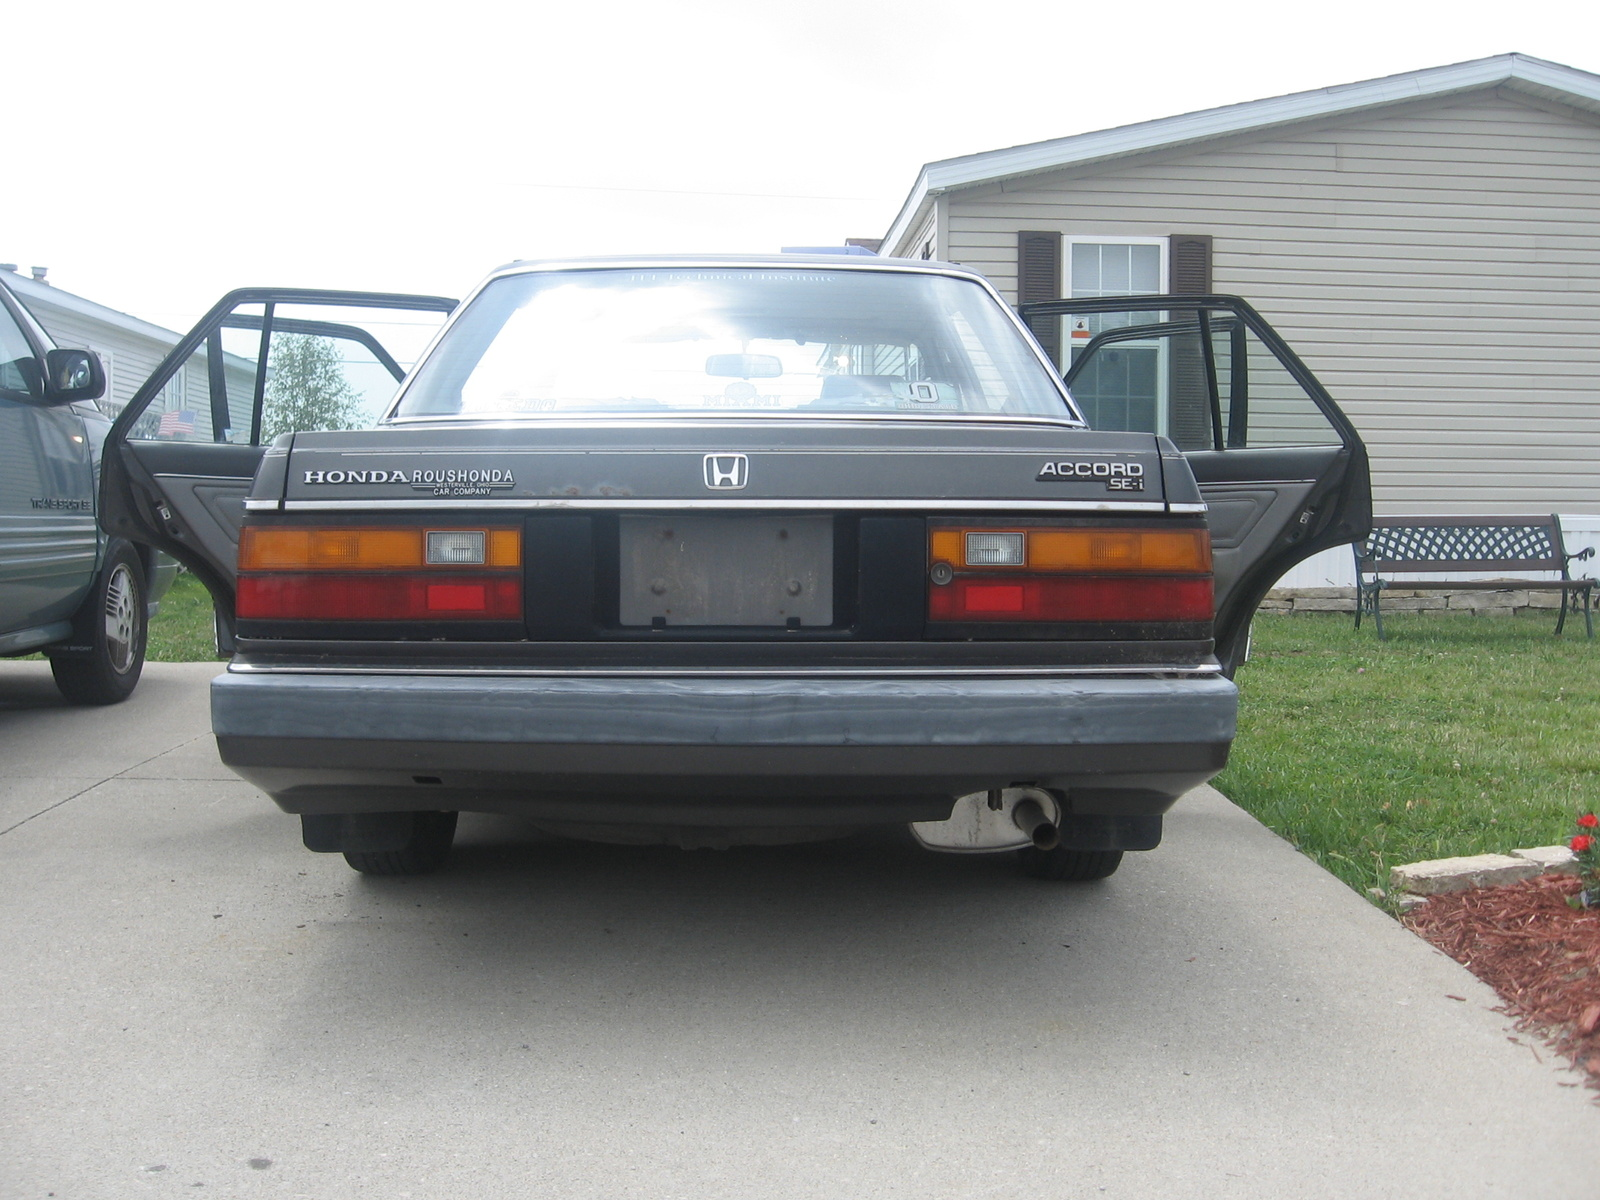 1985 Honda Accord Sei 1985 Honda Accord Se-i